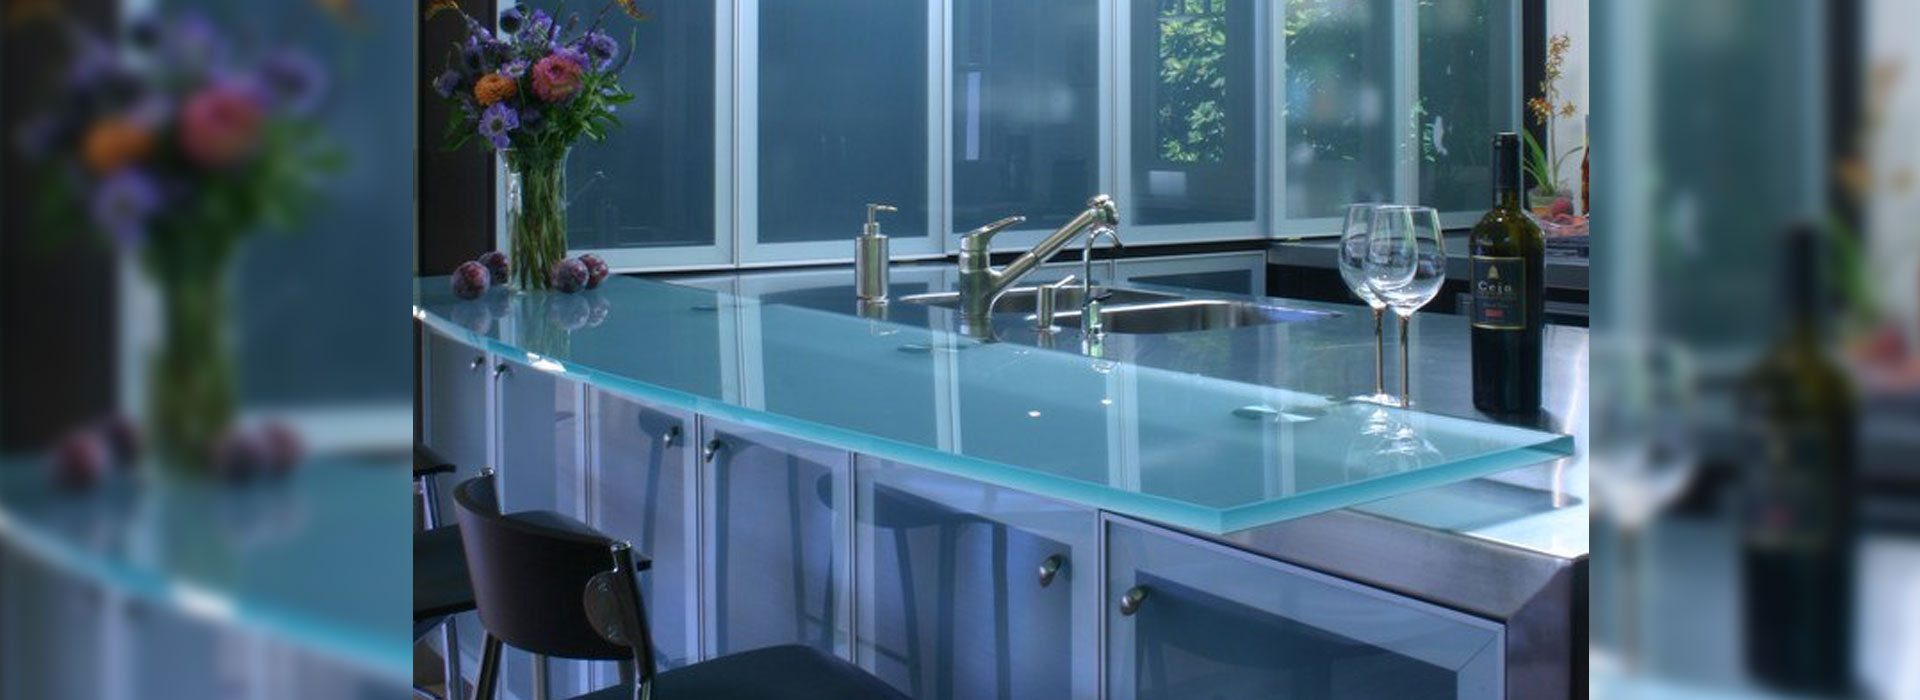 Glass Tables & Countertops | Residential Glass | Anchor-Ventana Glass